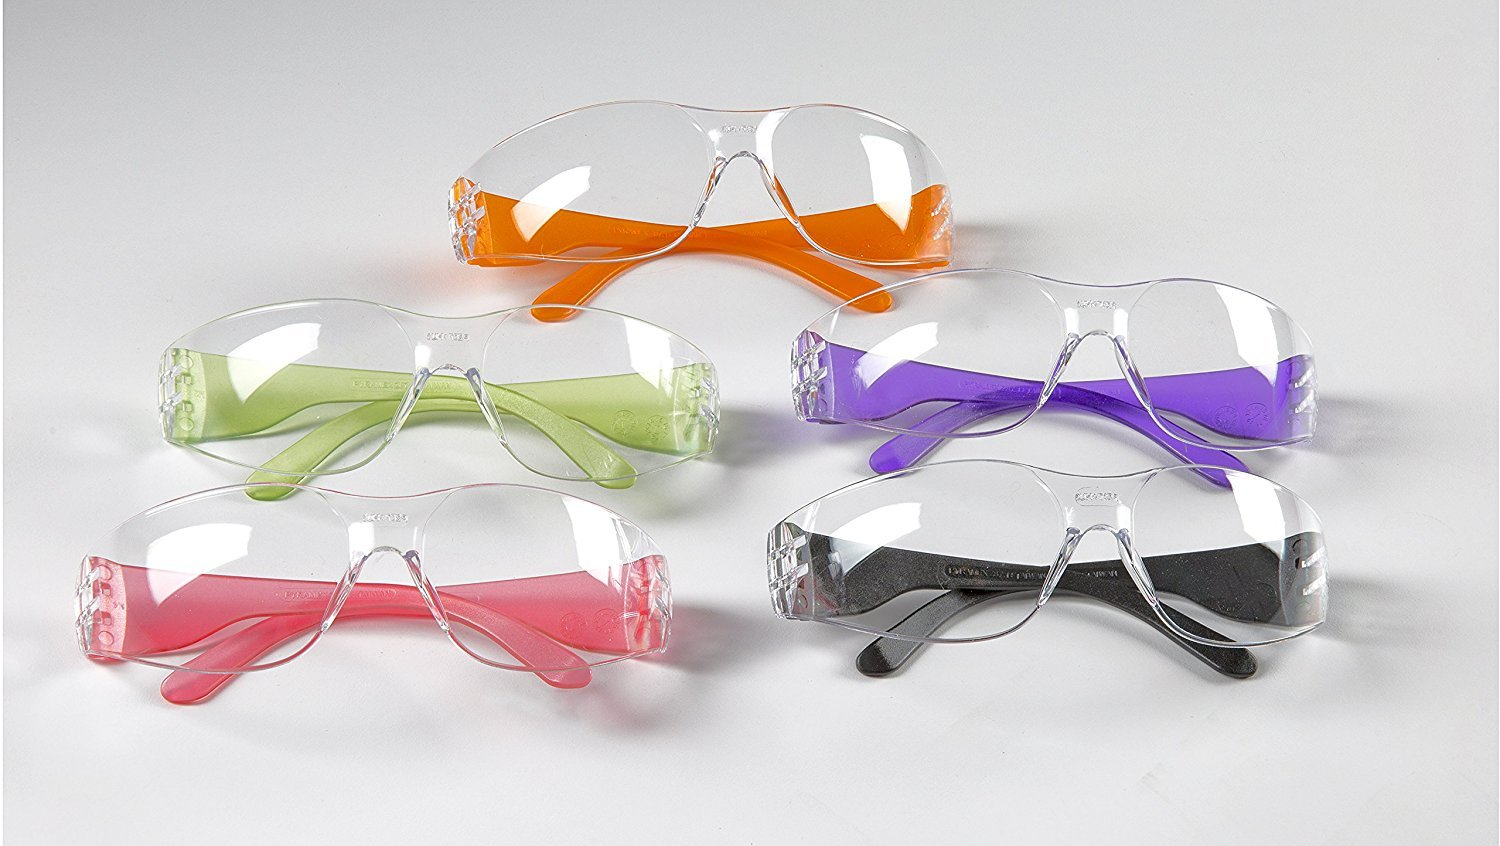 f66698bea9d2 12pak Safety Glasses for Nerf Gun Kids Party - Clear Lens w/Multi-Colored